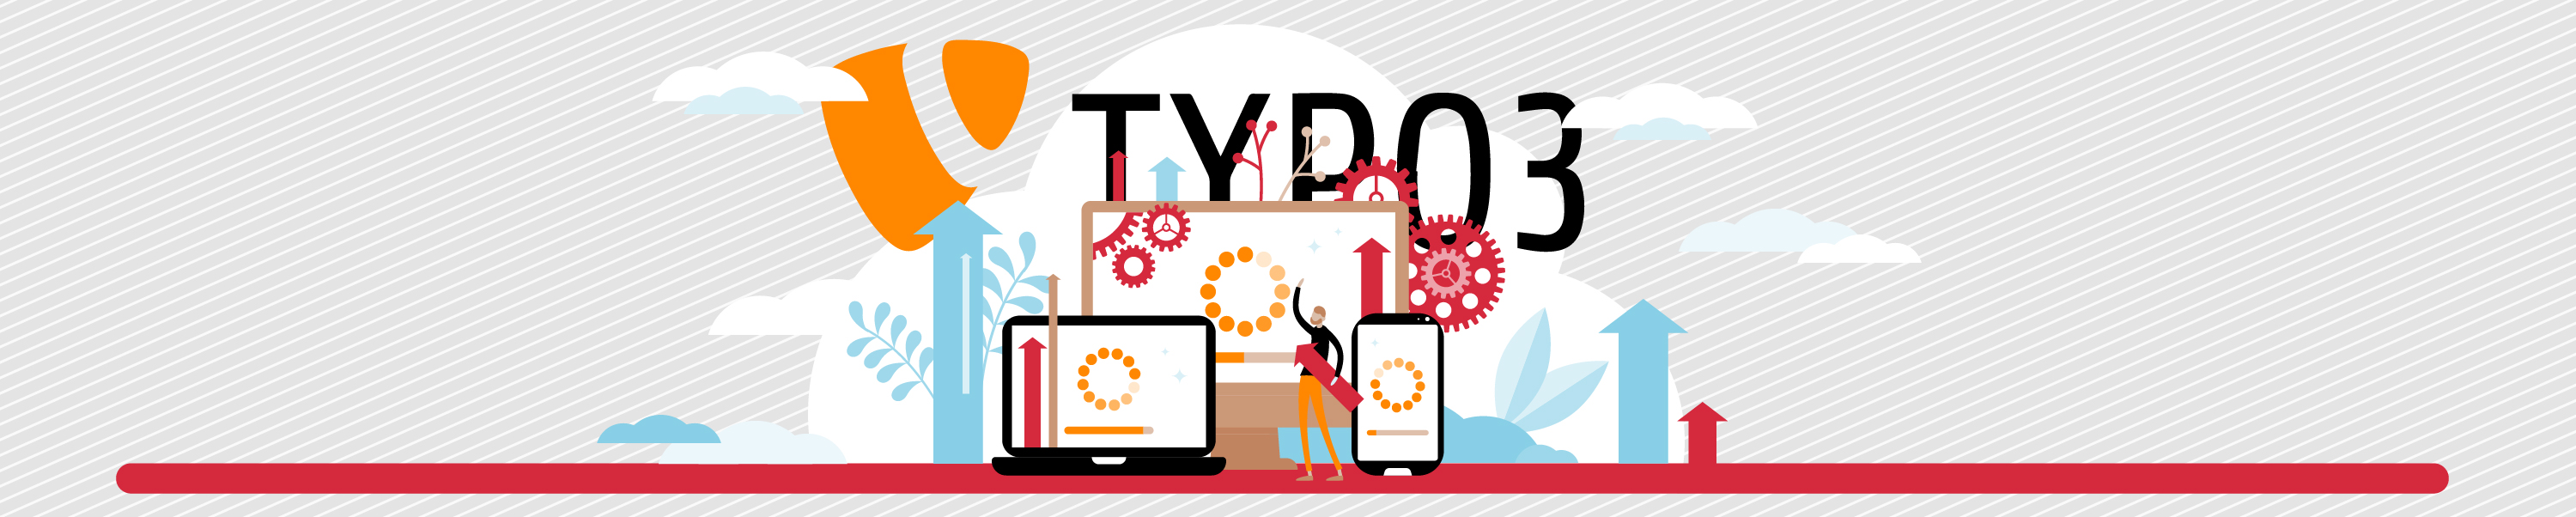 W4 Typo3 Update Services